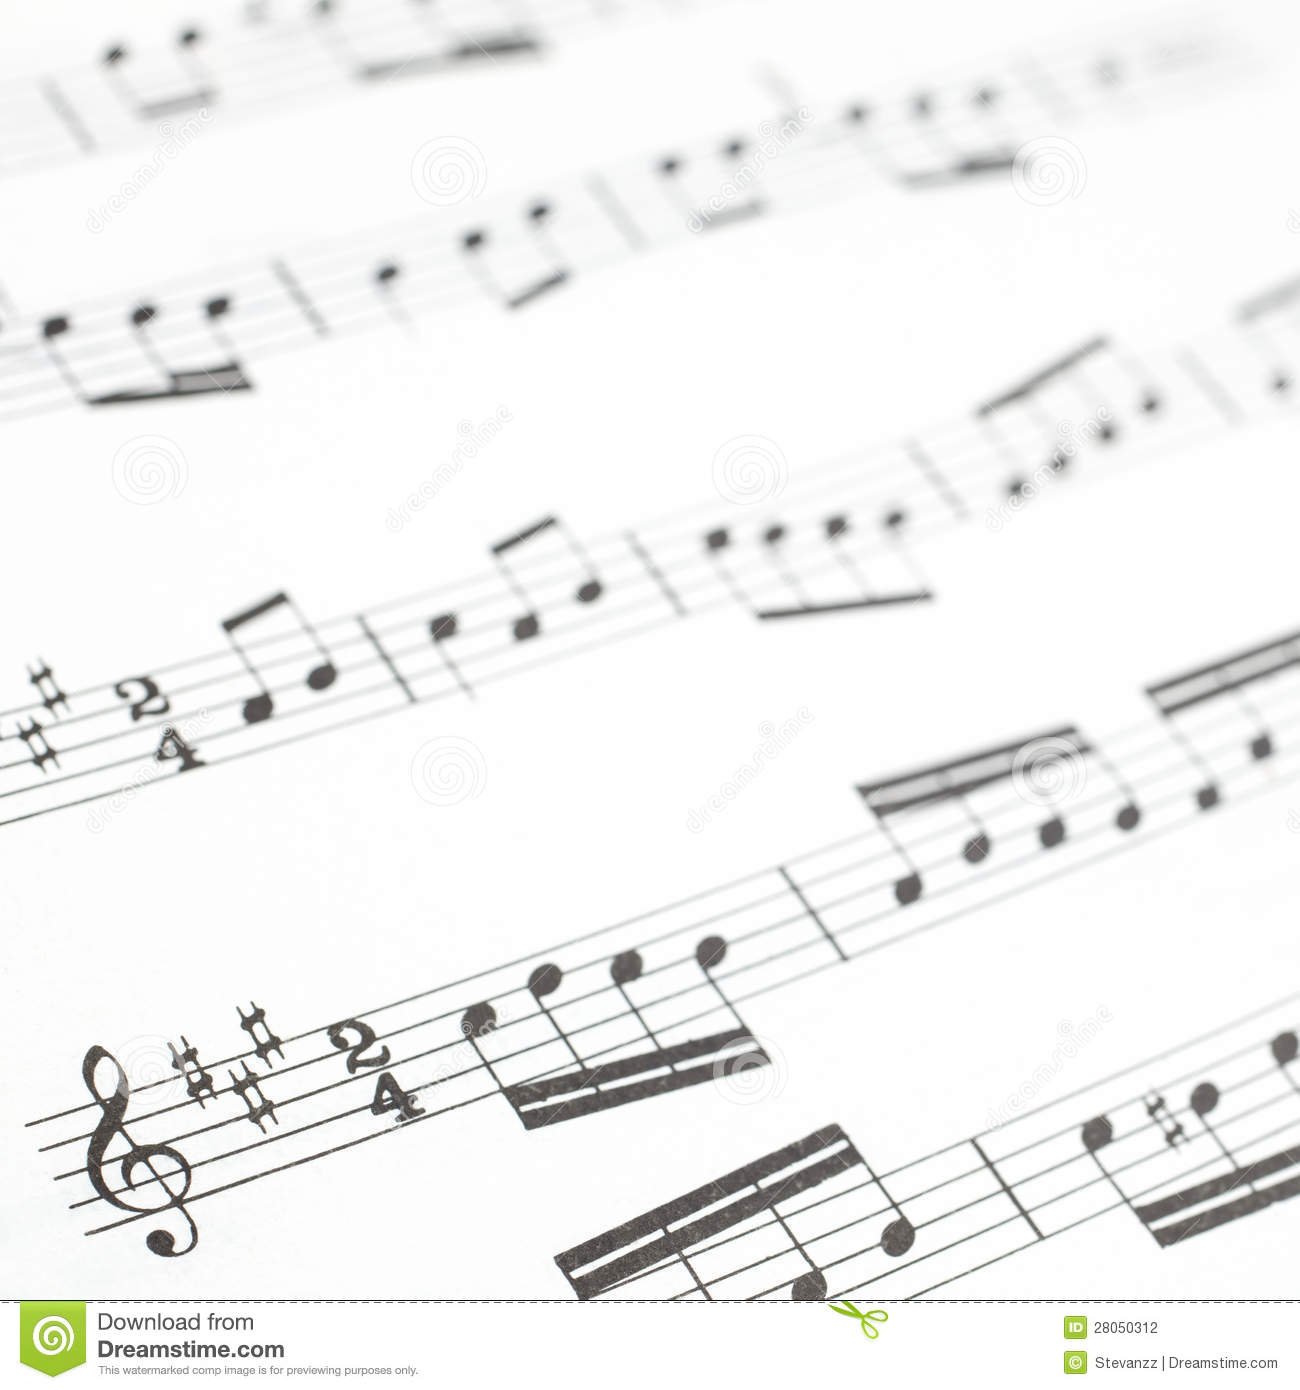 Old Printed Music Sheet Or Score And Musical Notes Stock